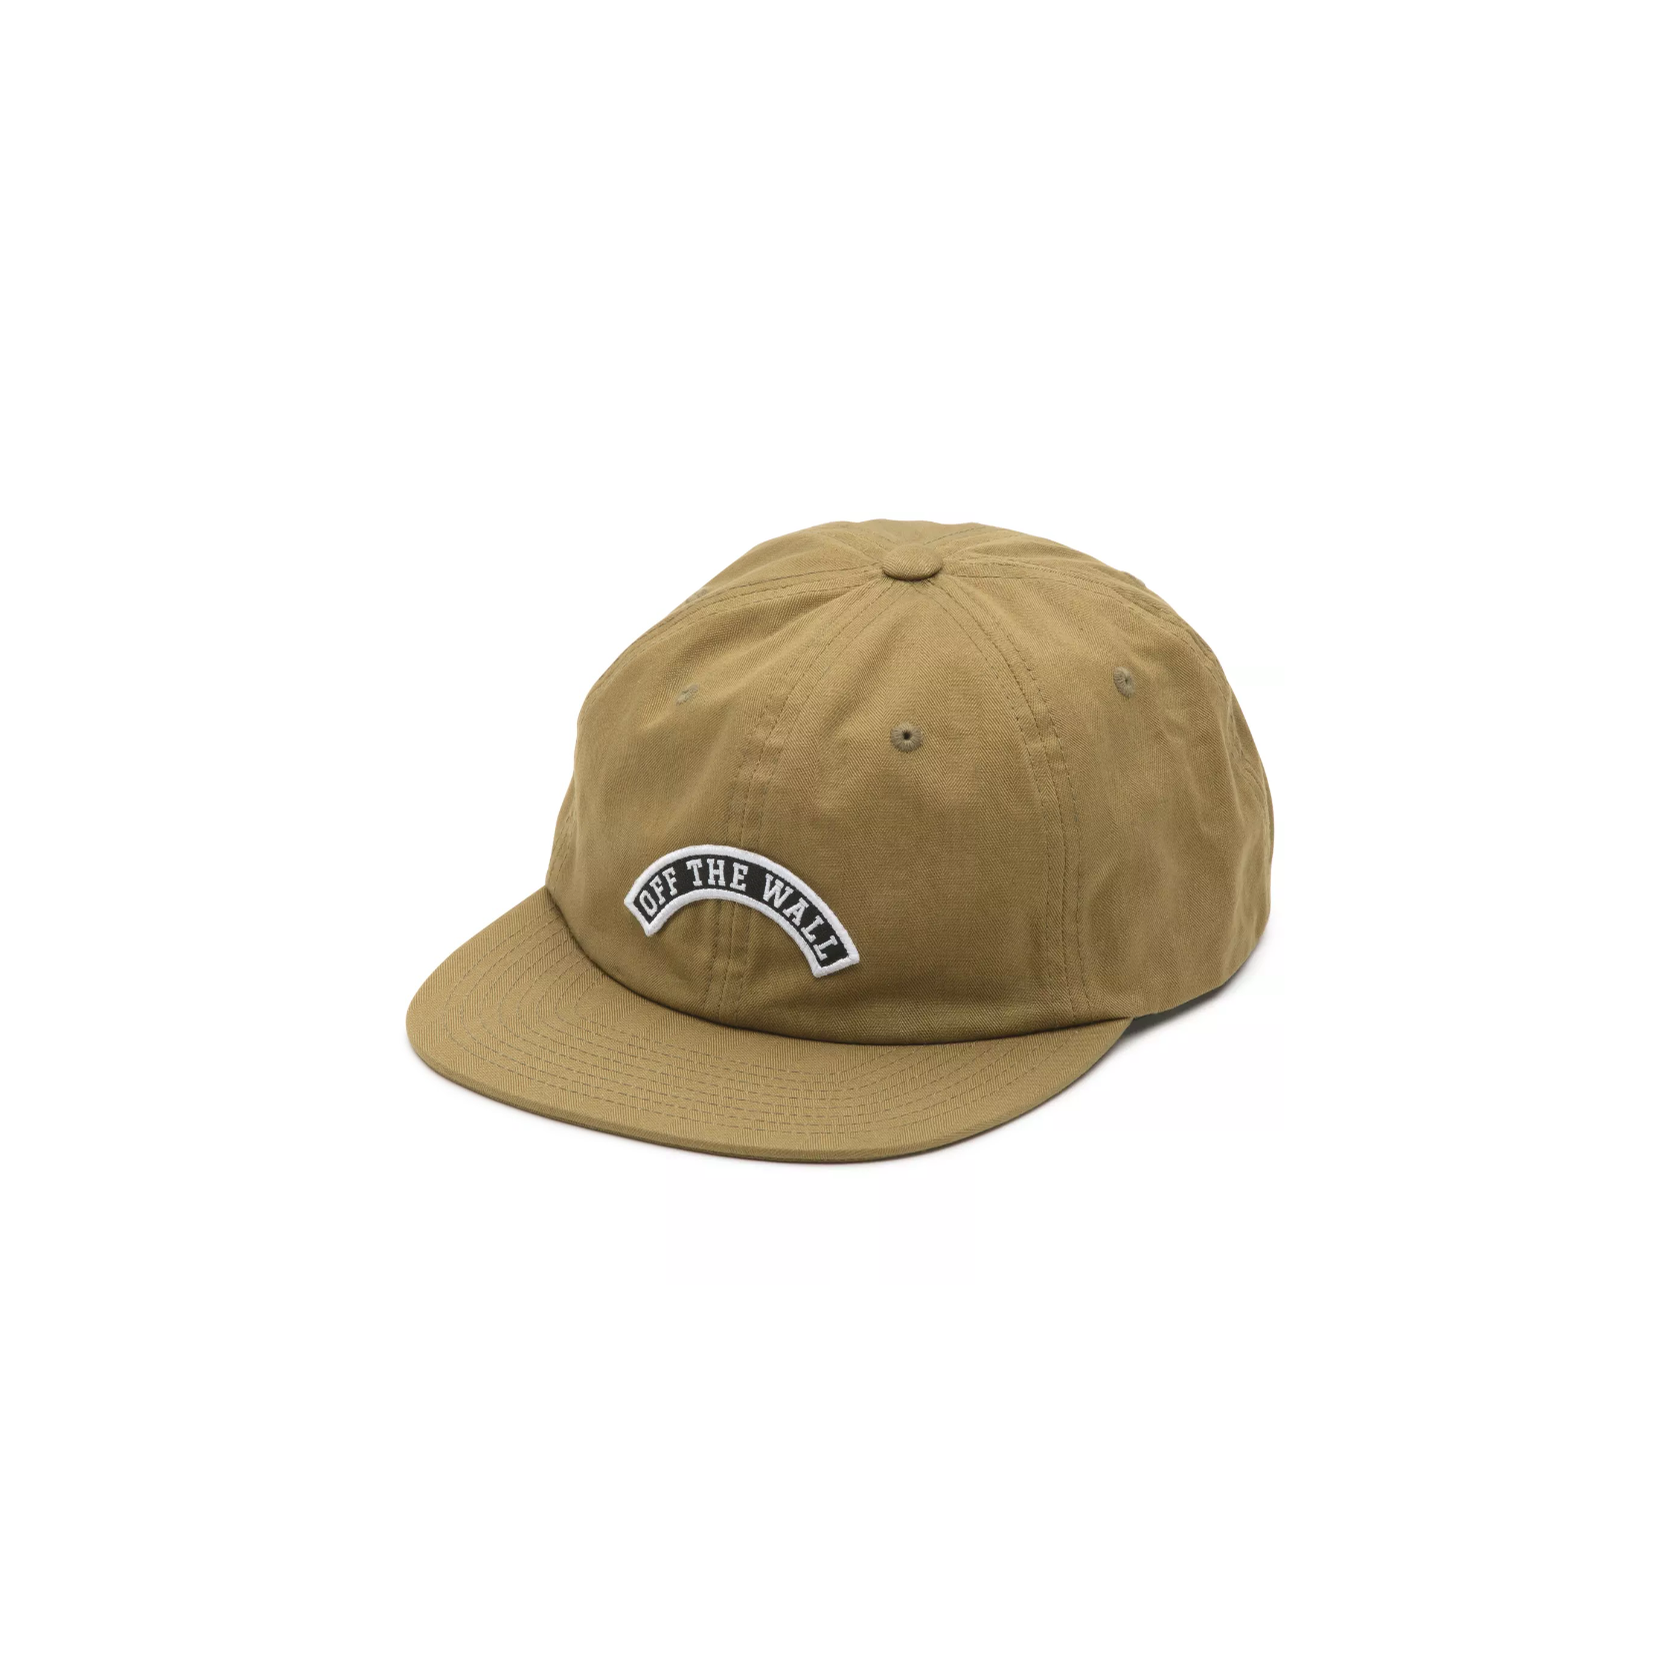 Lowell Vintage Unstructured Hat (Dirt)